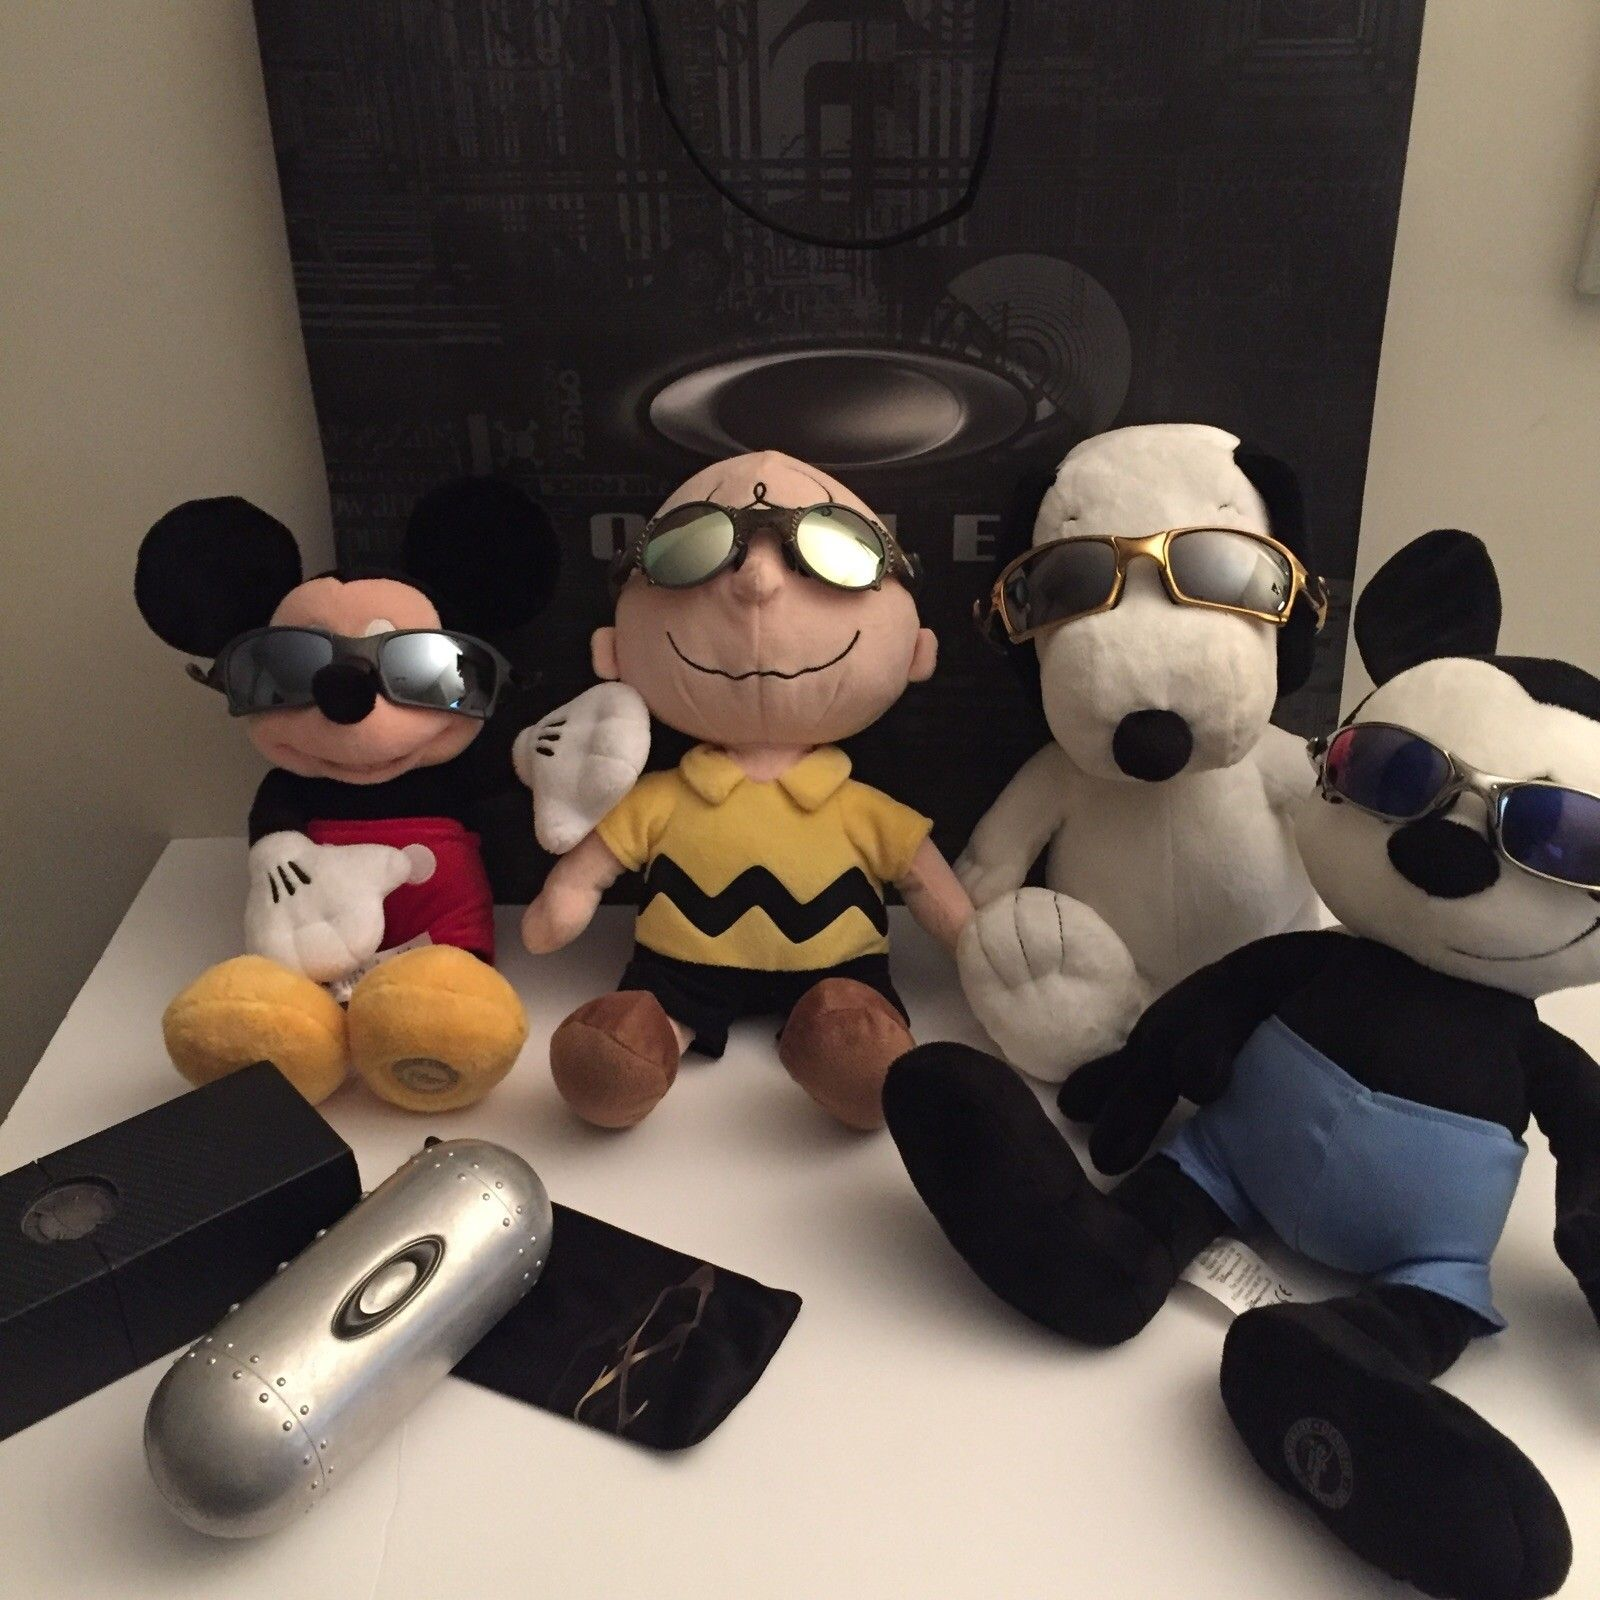 What Oakleys are your plush animals wearing today ??? - 20151222205234 (1).jpg